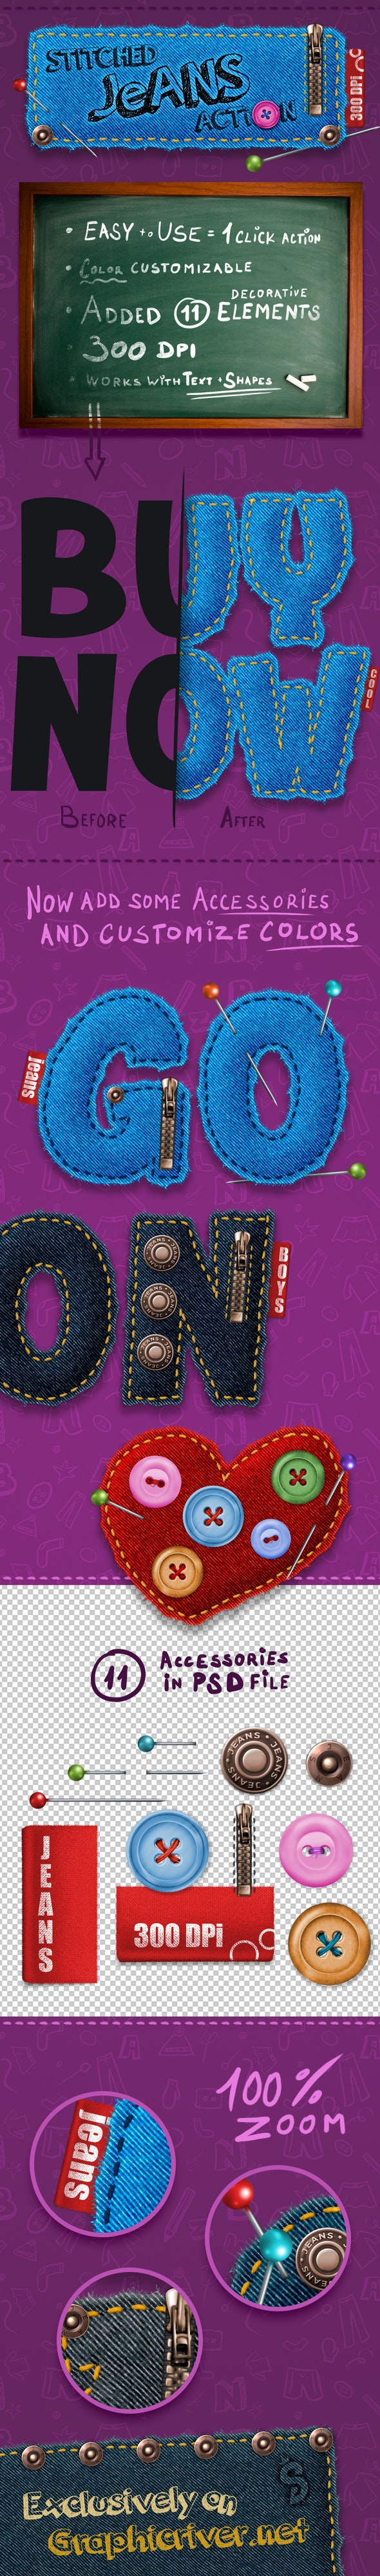 Stitched Jeans Action - 300 DPI - Text Effects Actions